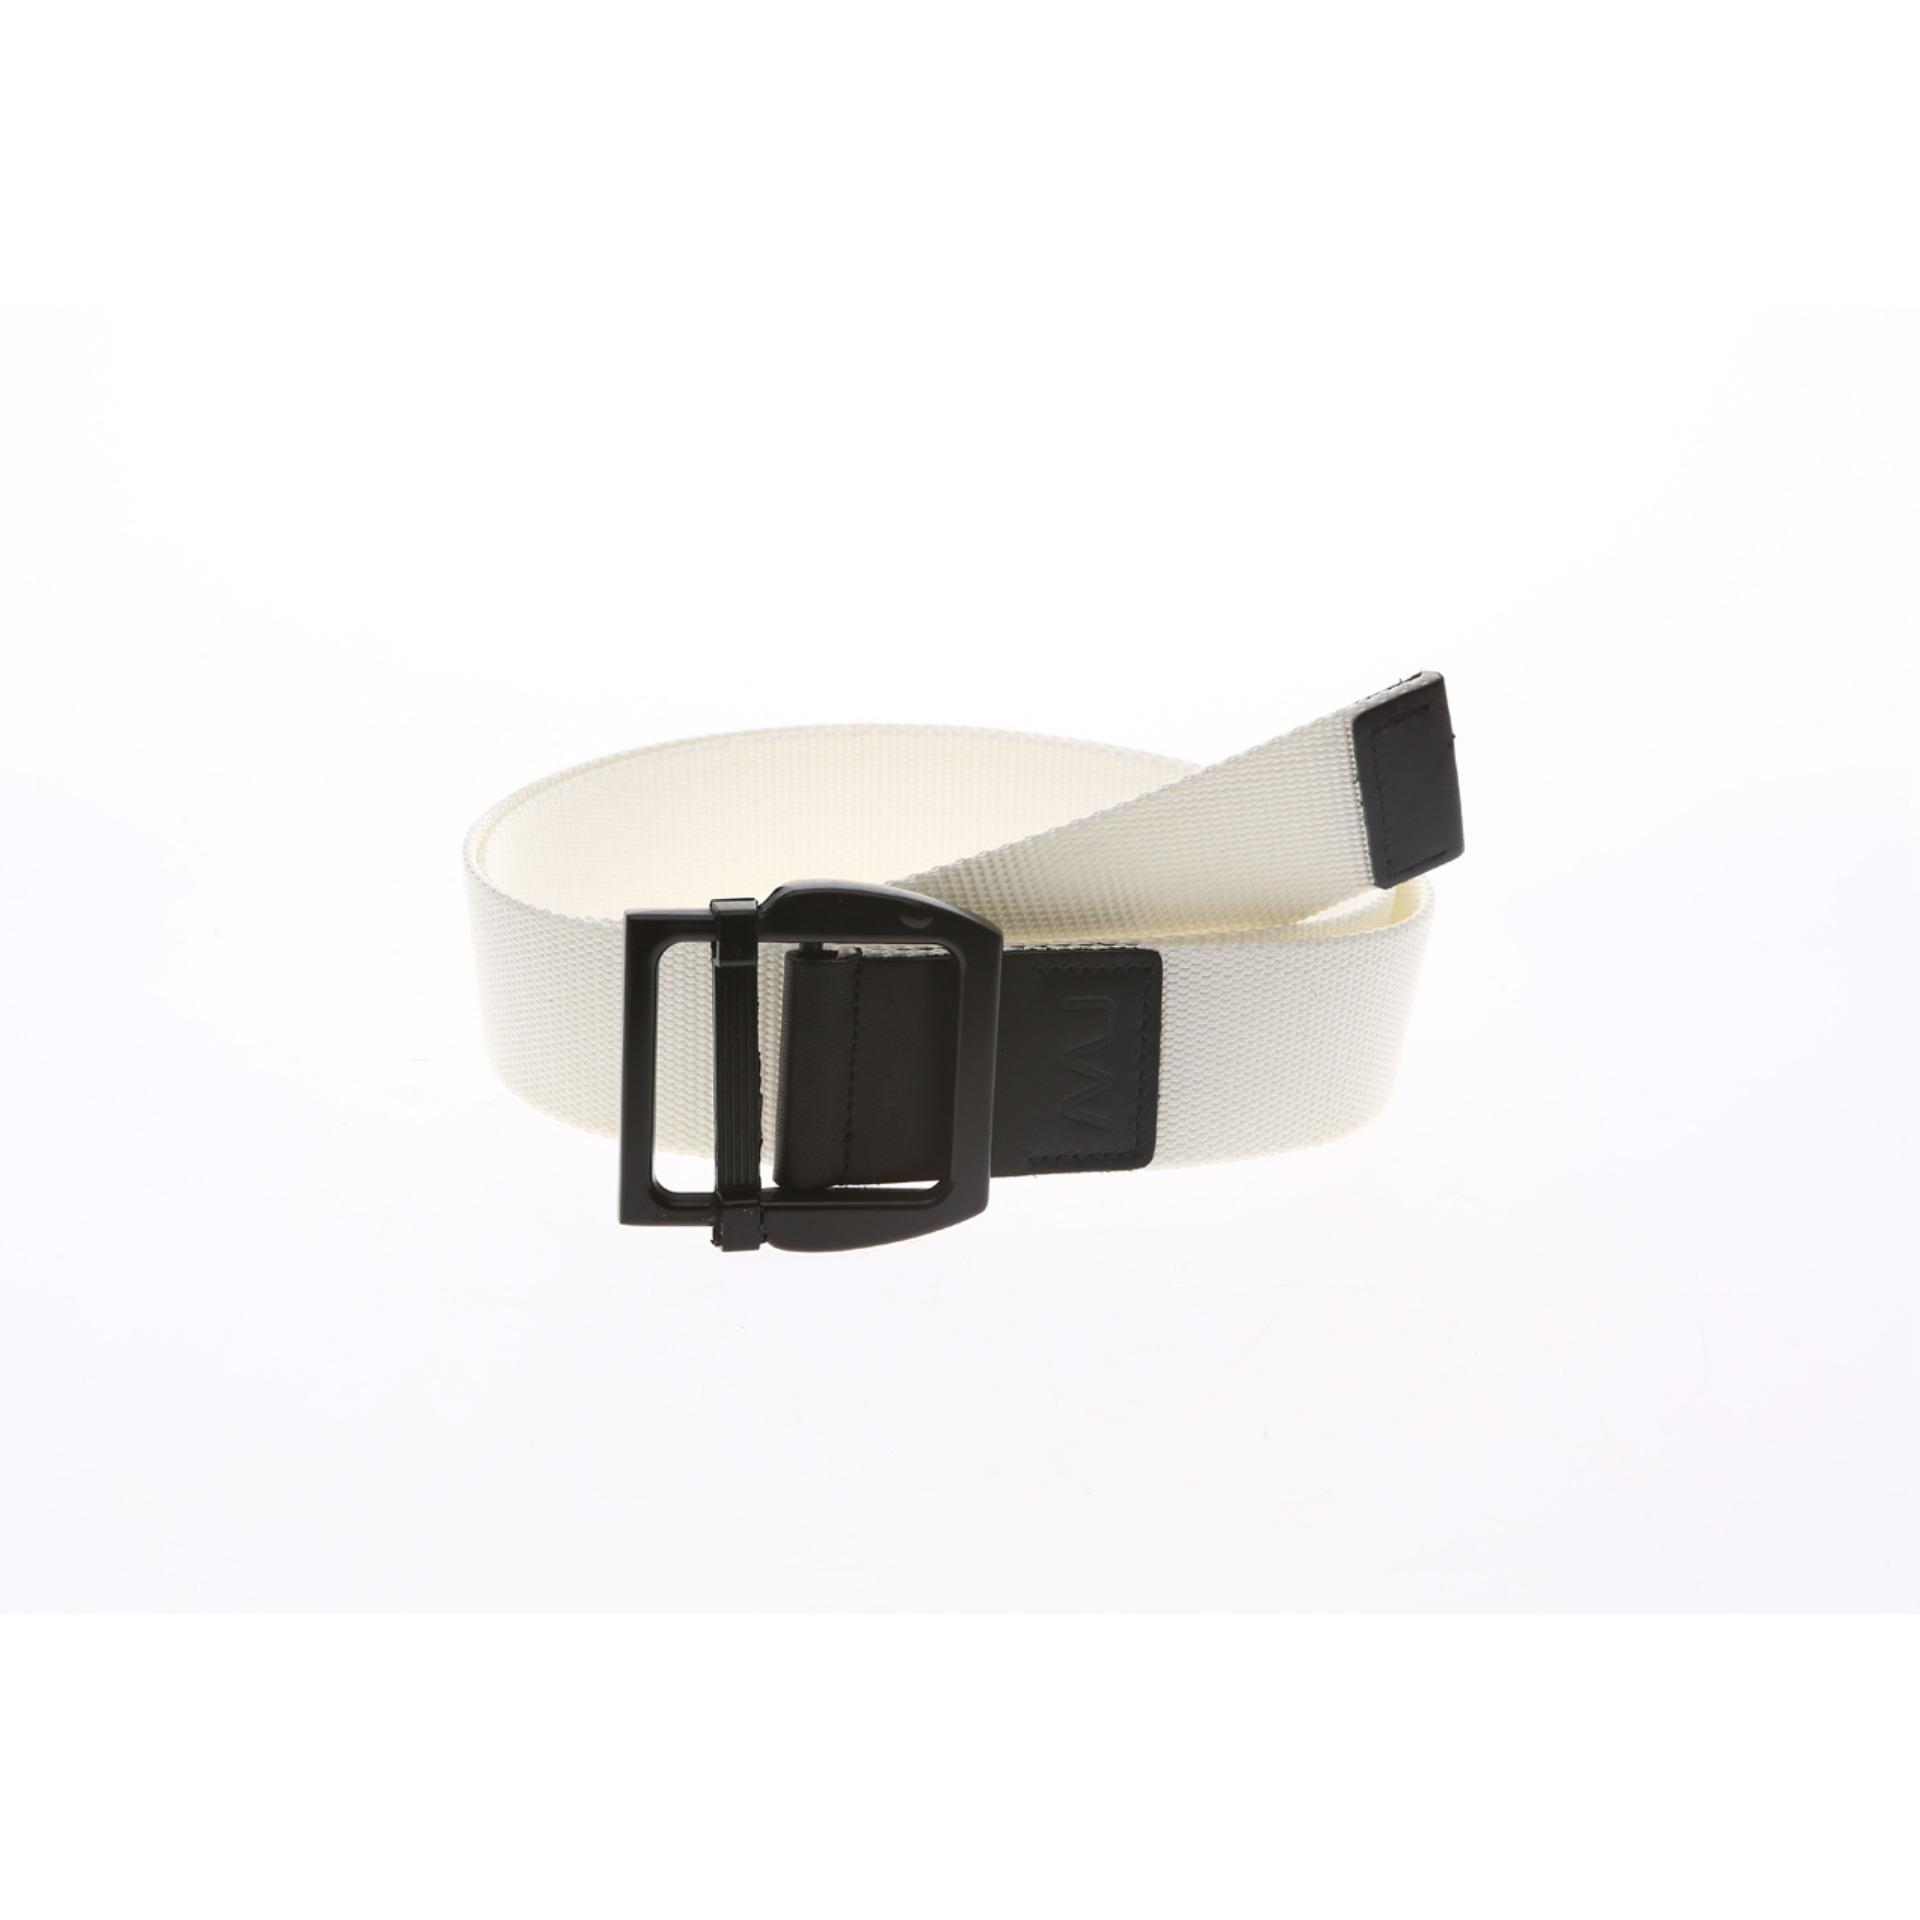 MJ BENRB048-CVBD03 Belt (White)